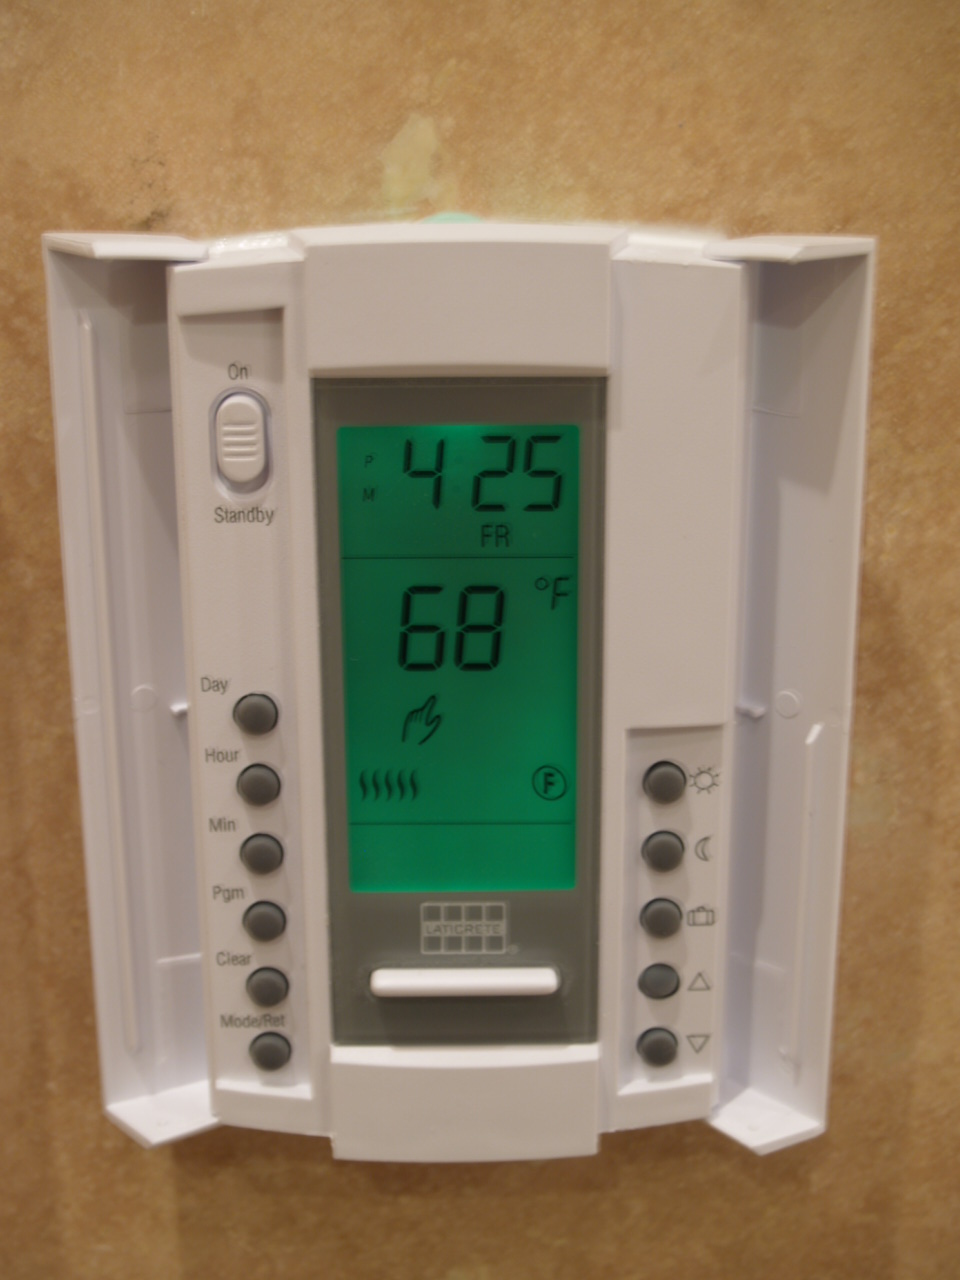 C.Kattar. Radiant floor thermostat.JPG